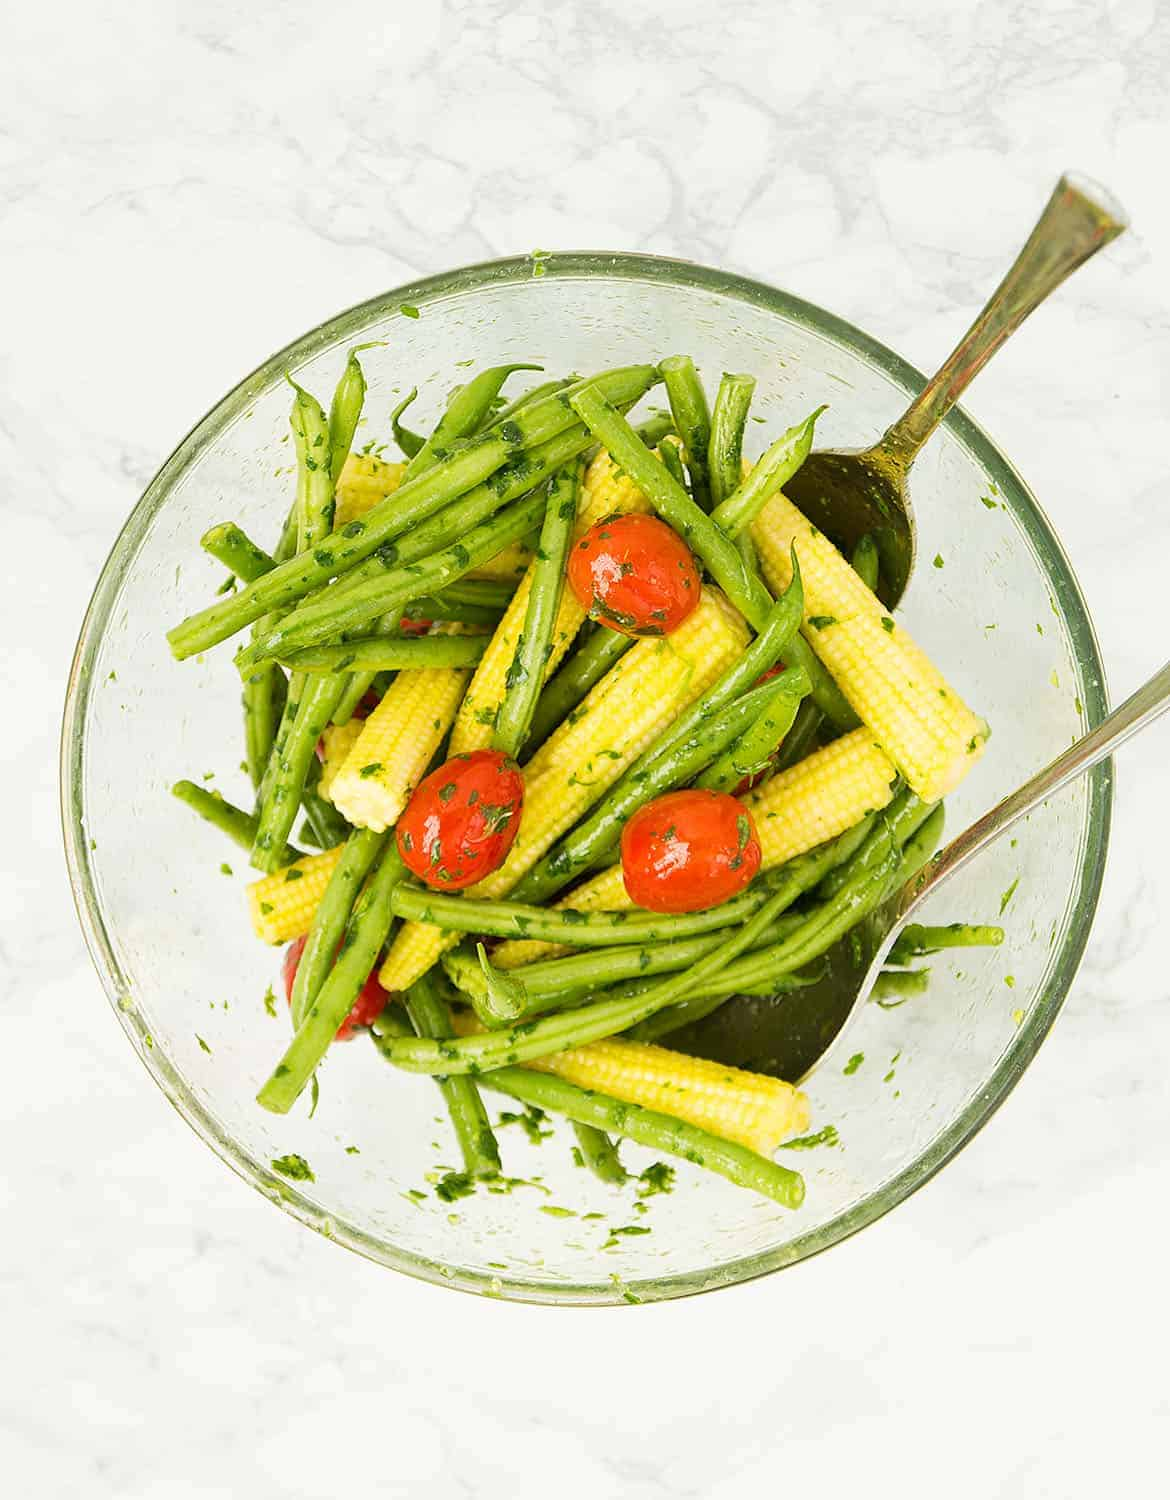 A glass bowl full of green beans, baby corns and cherry tomatoes.